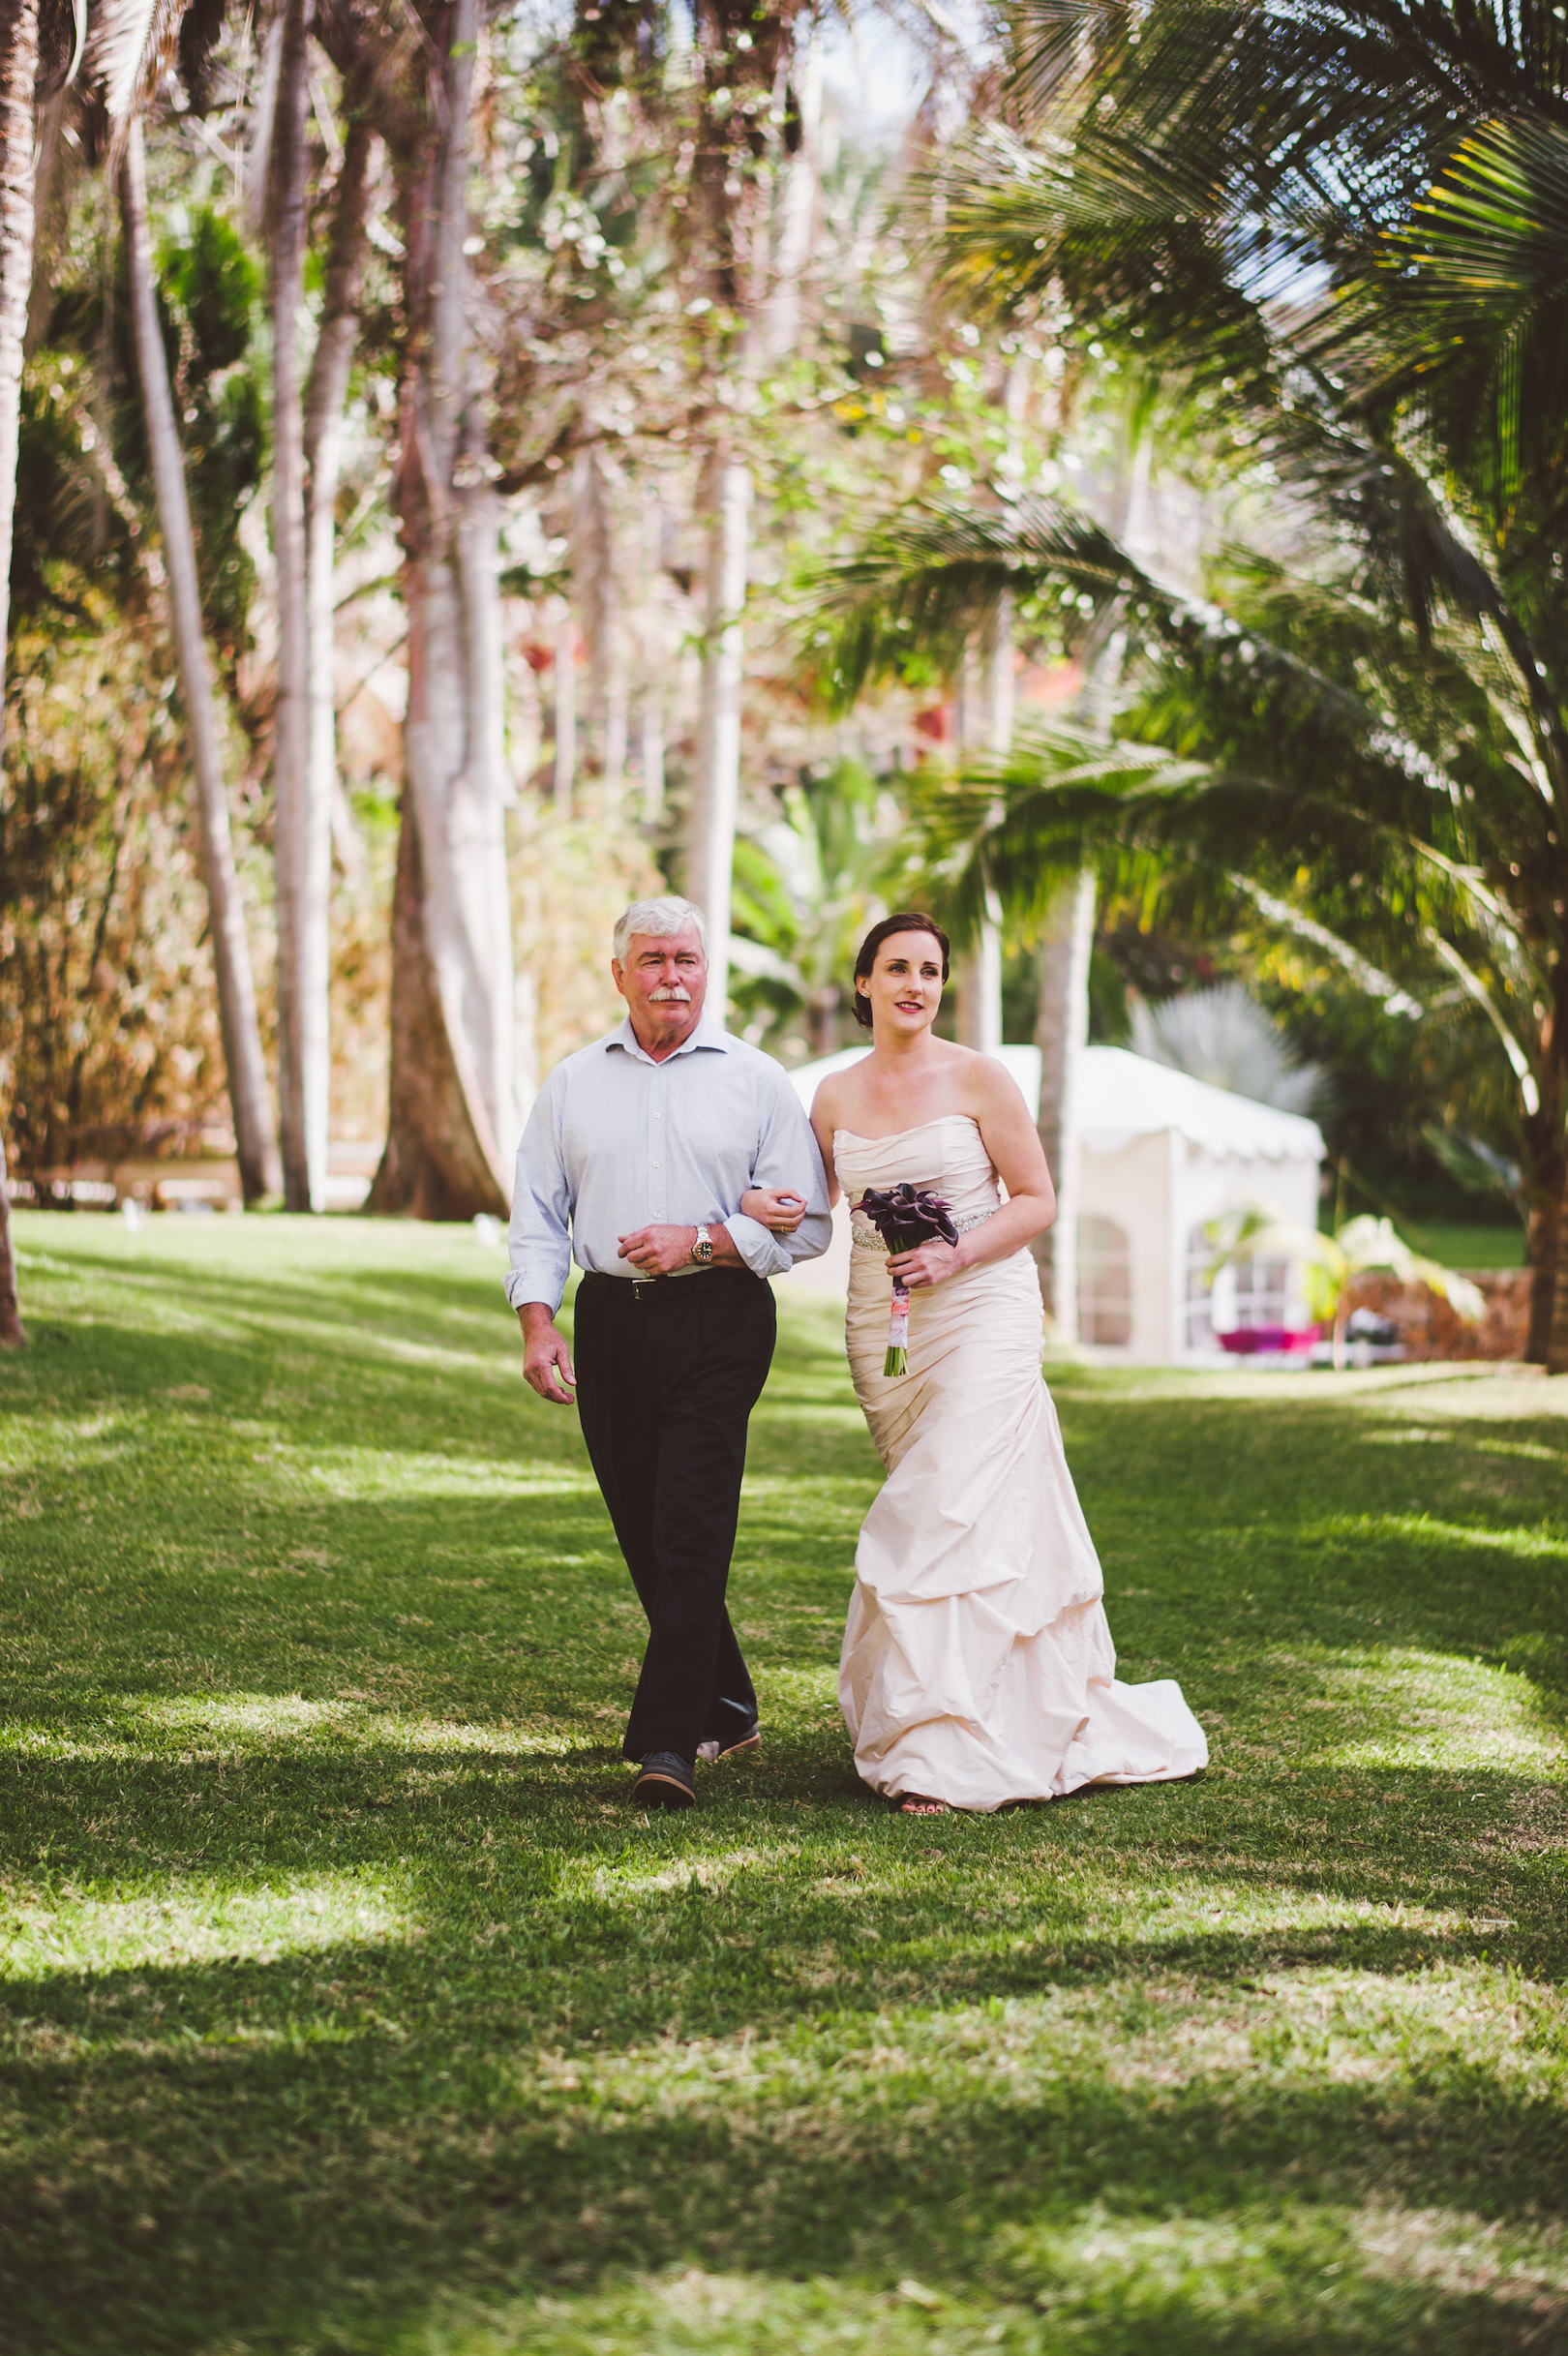 Steve & Mika - Sayulita - © Dallas Kolotylo Photography - 465